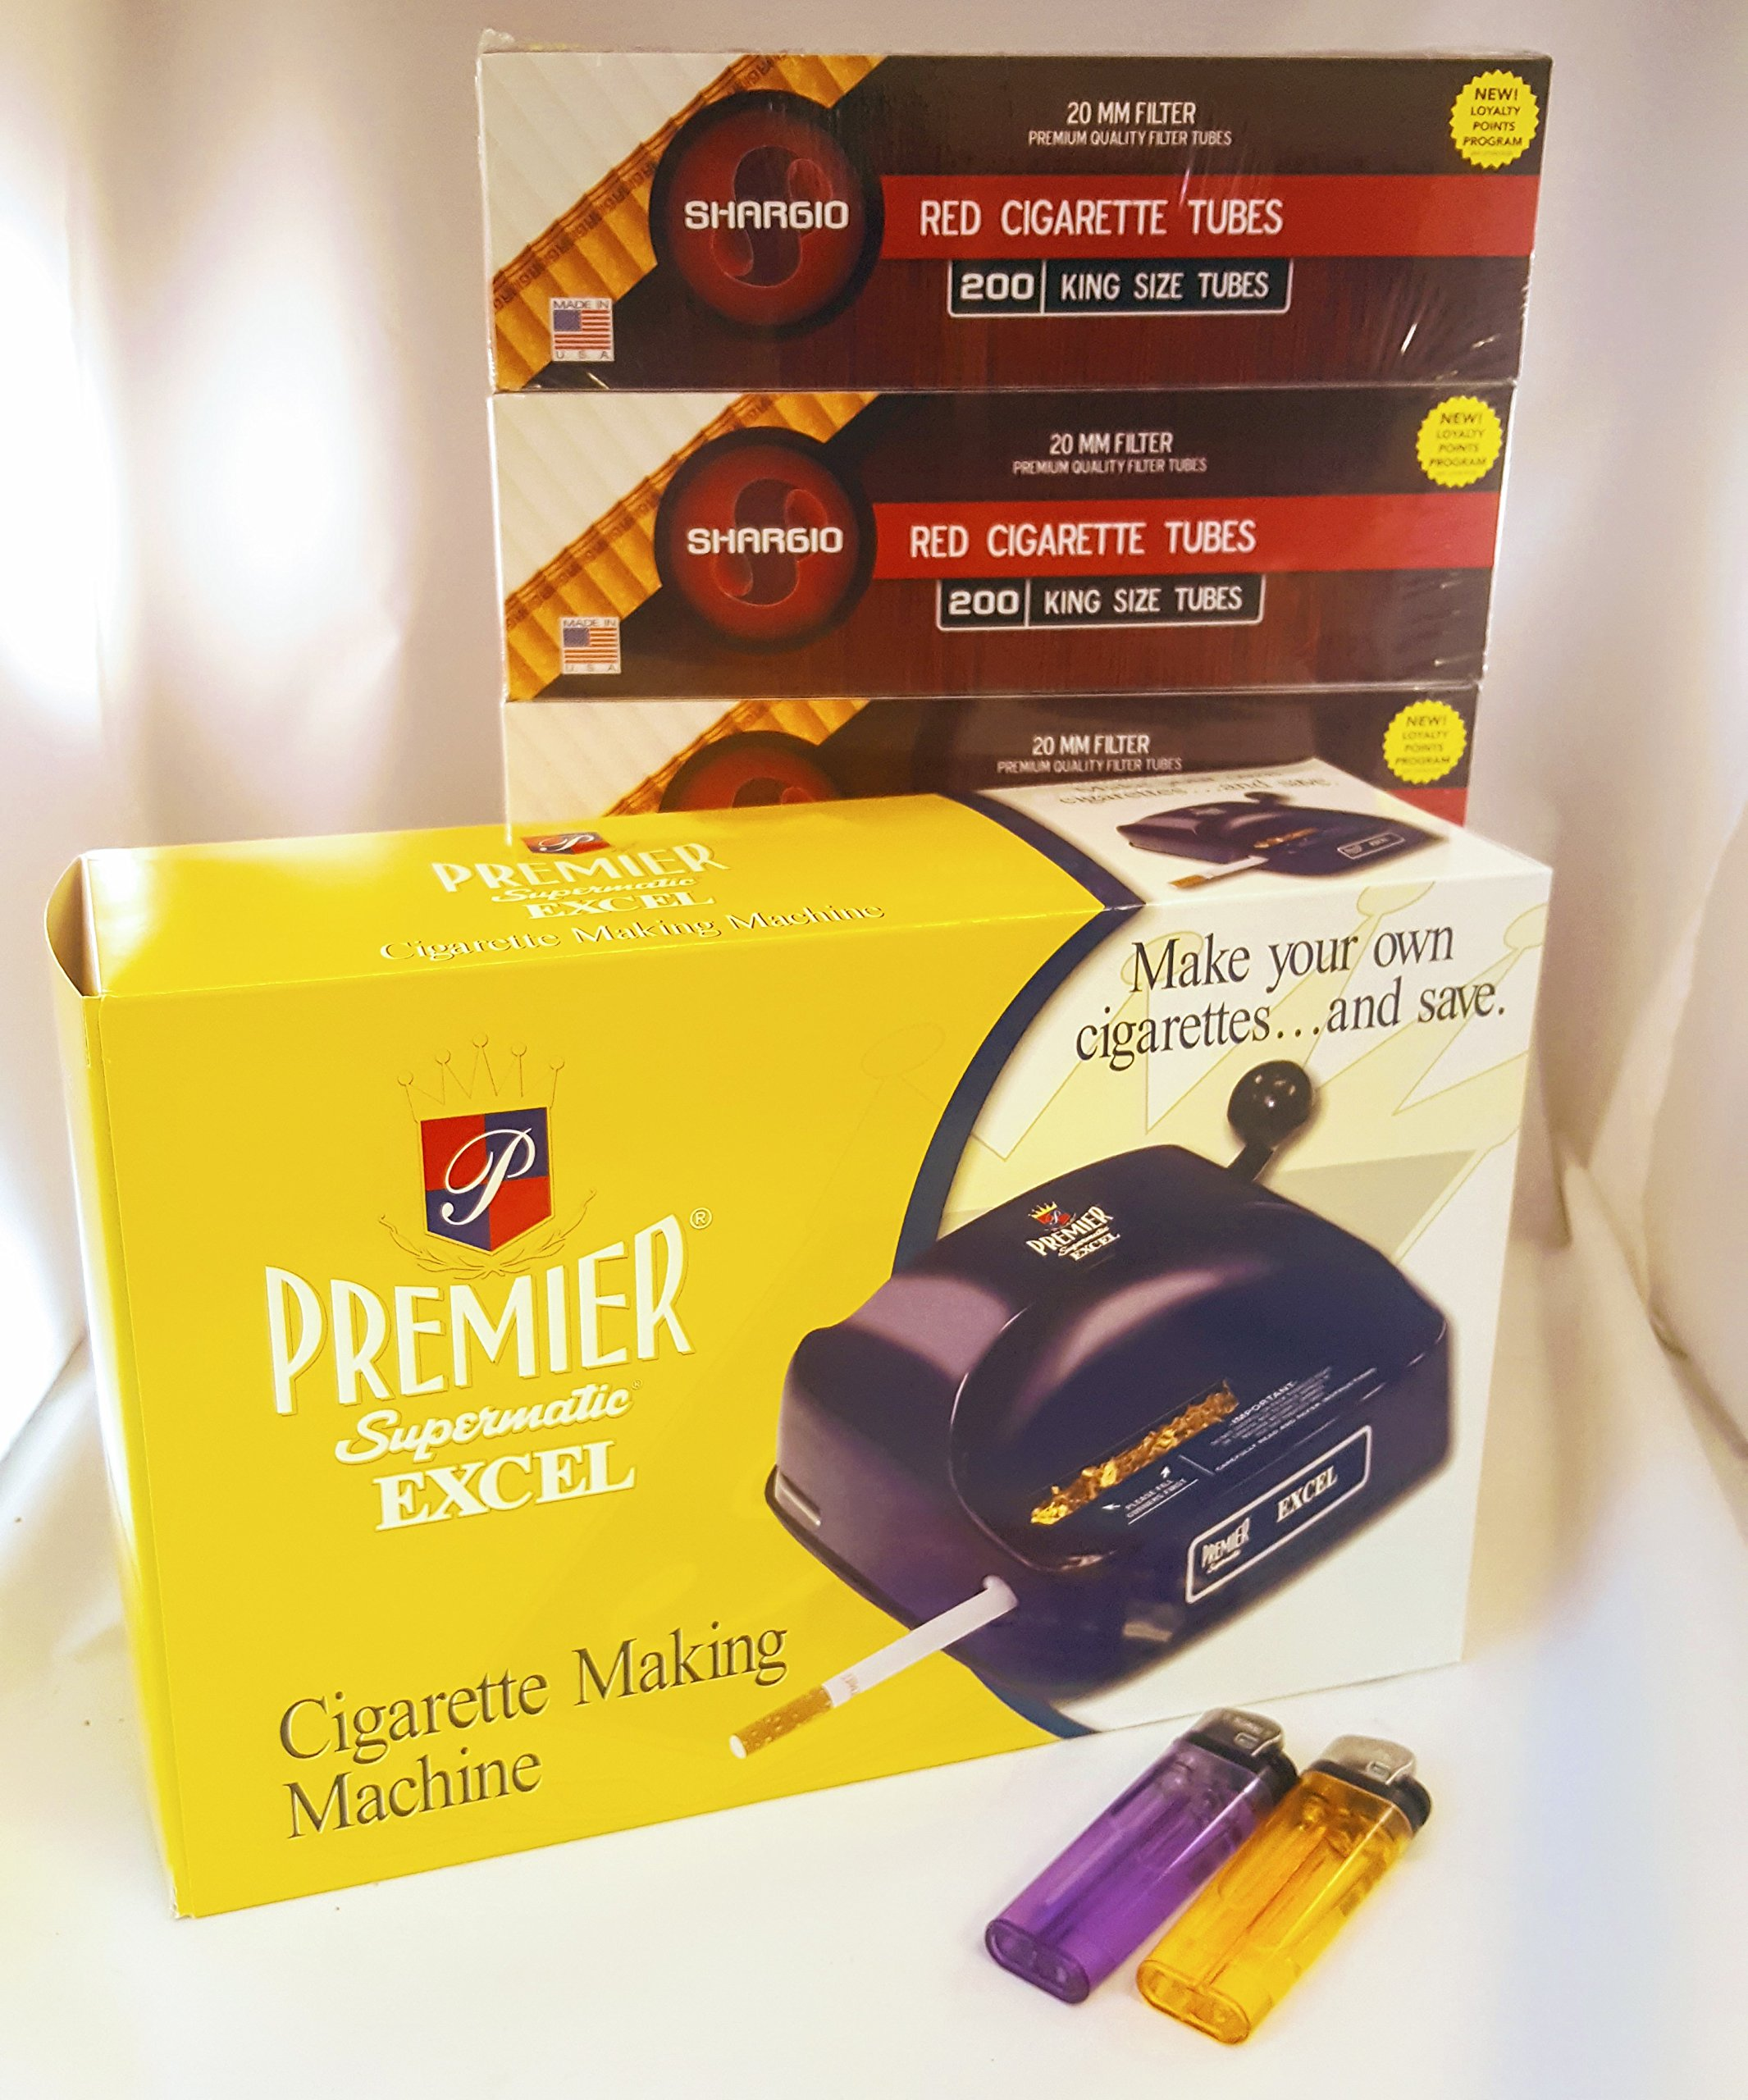 Premier Excel Cigarette Rolling Machine+ Free Shargio Tubes & liighters